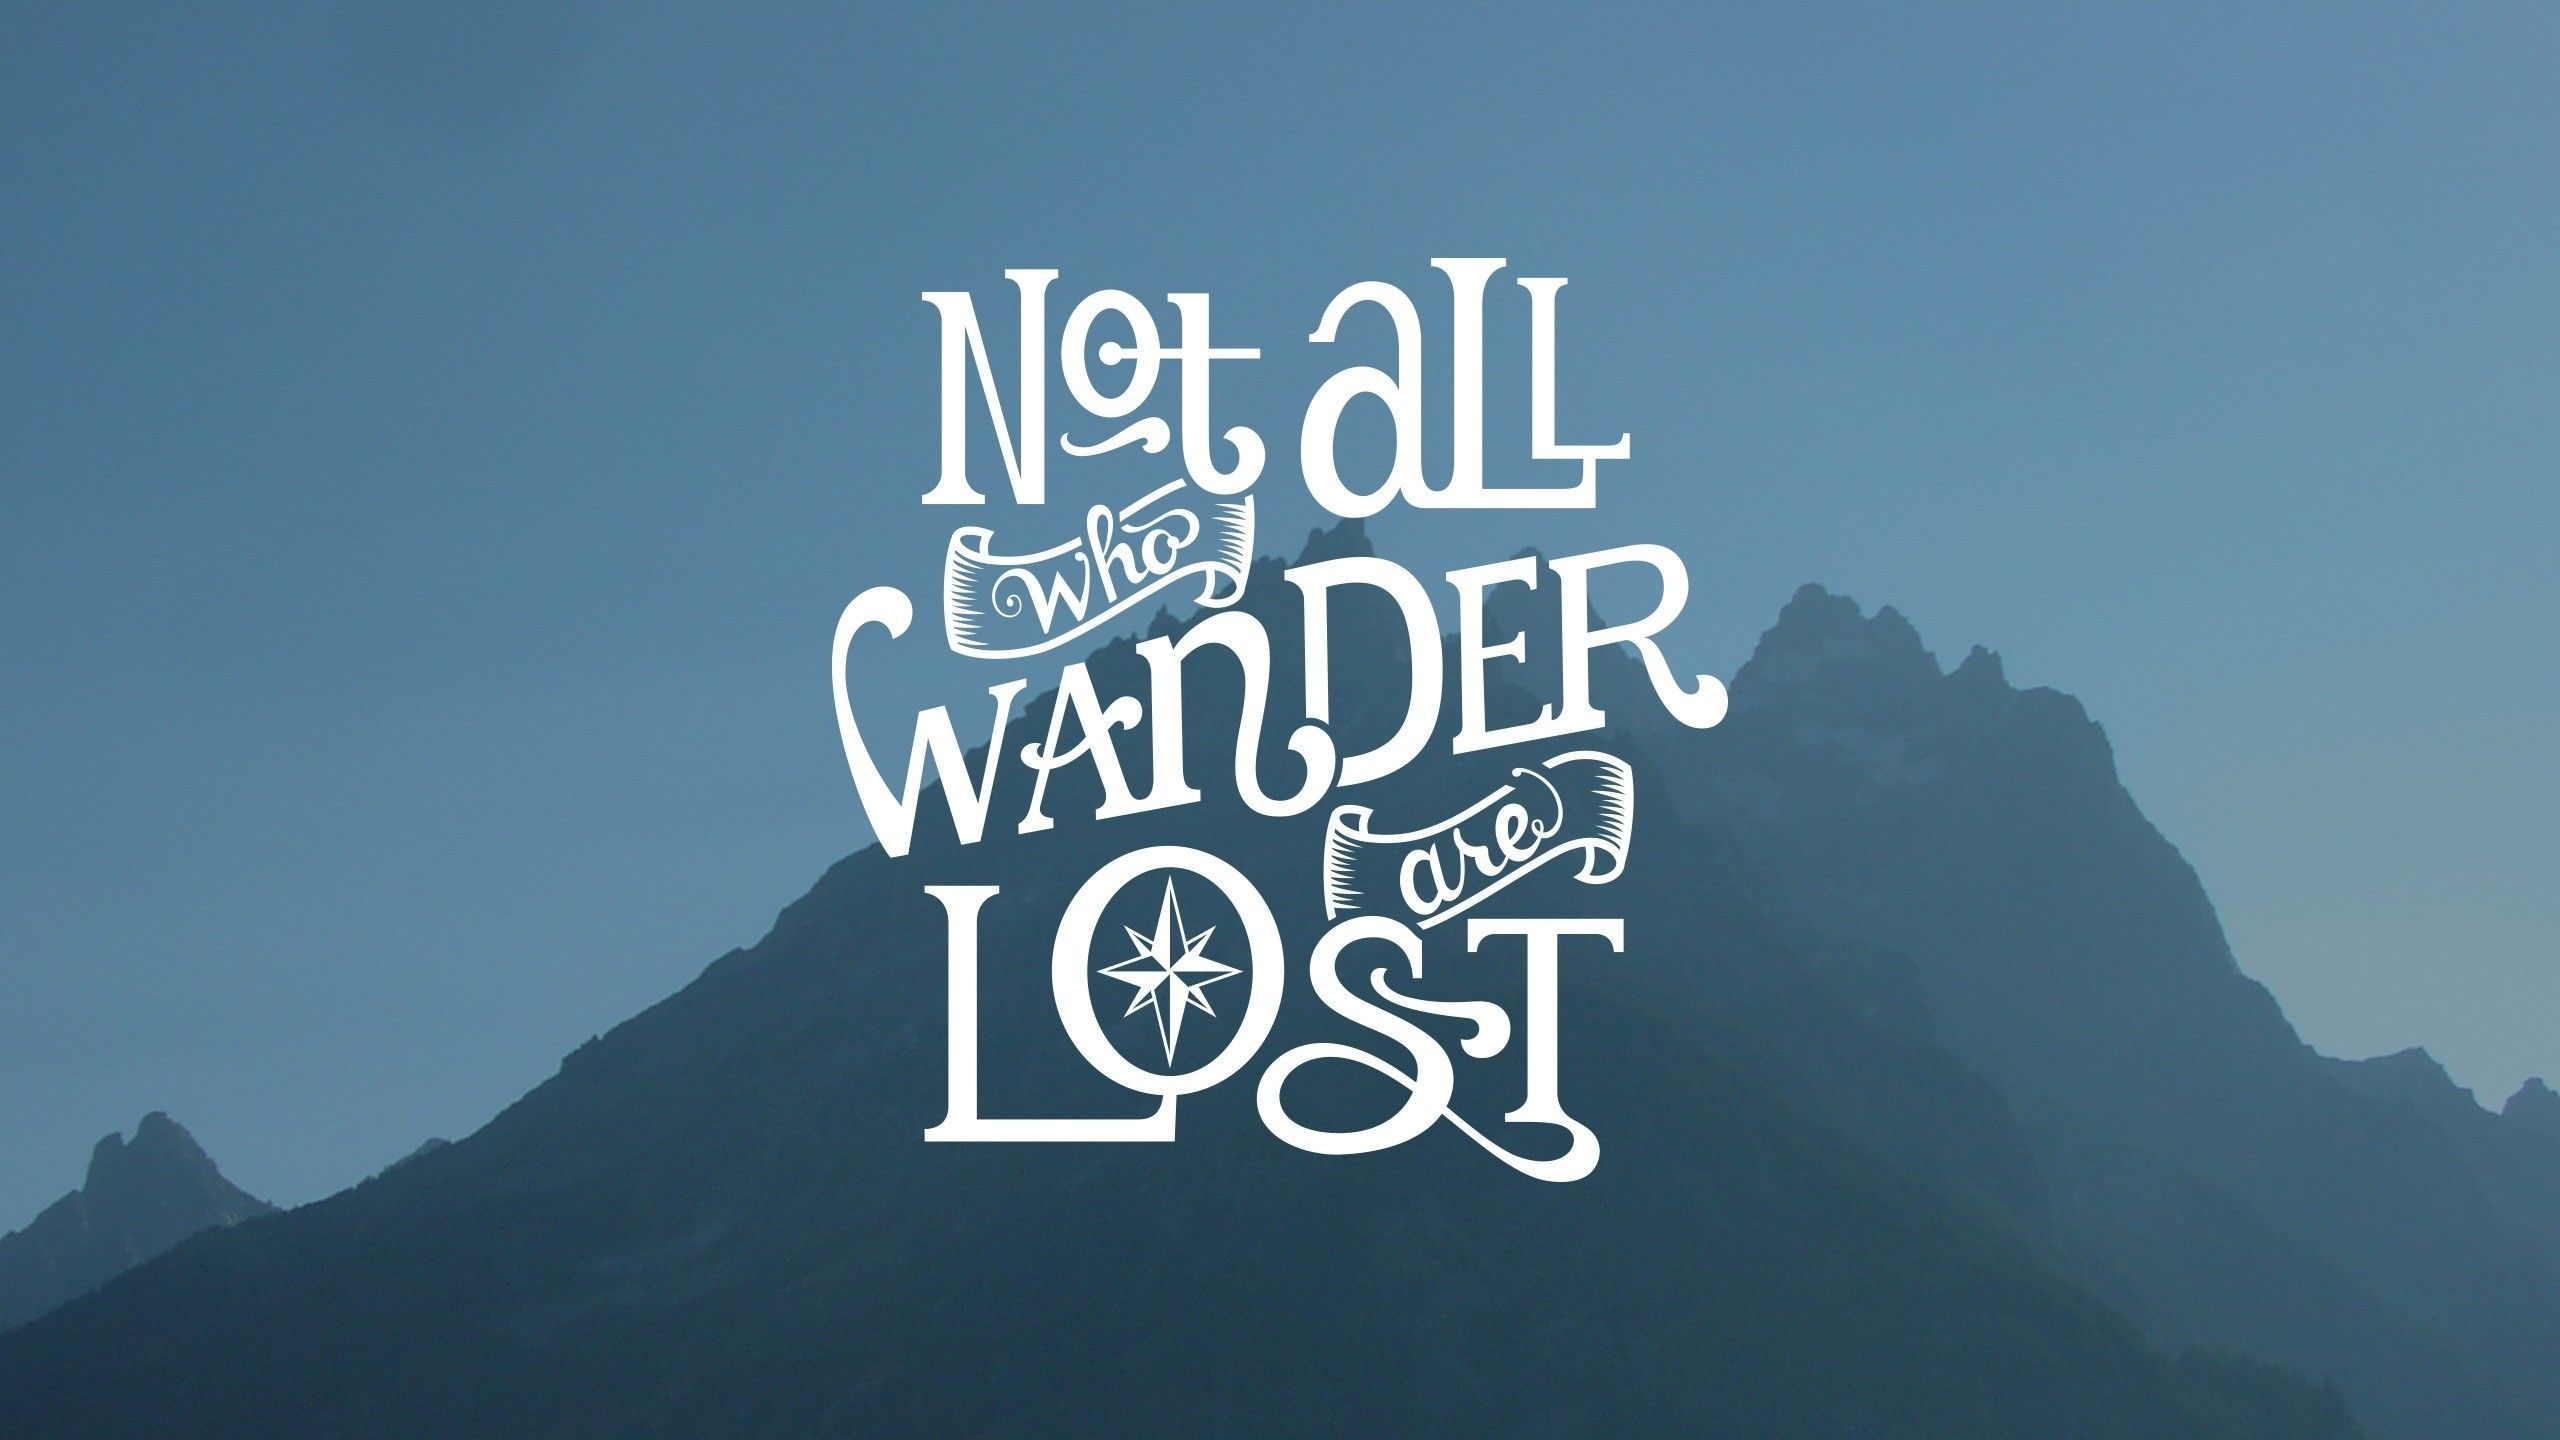 Simple Simple Background Blue Mountain Quote J R R Tolkien